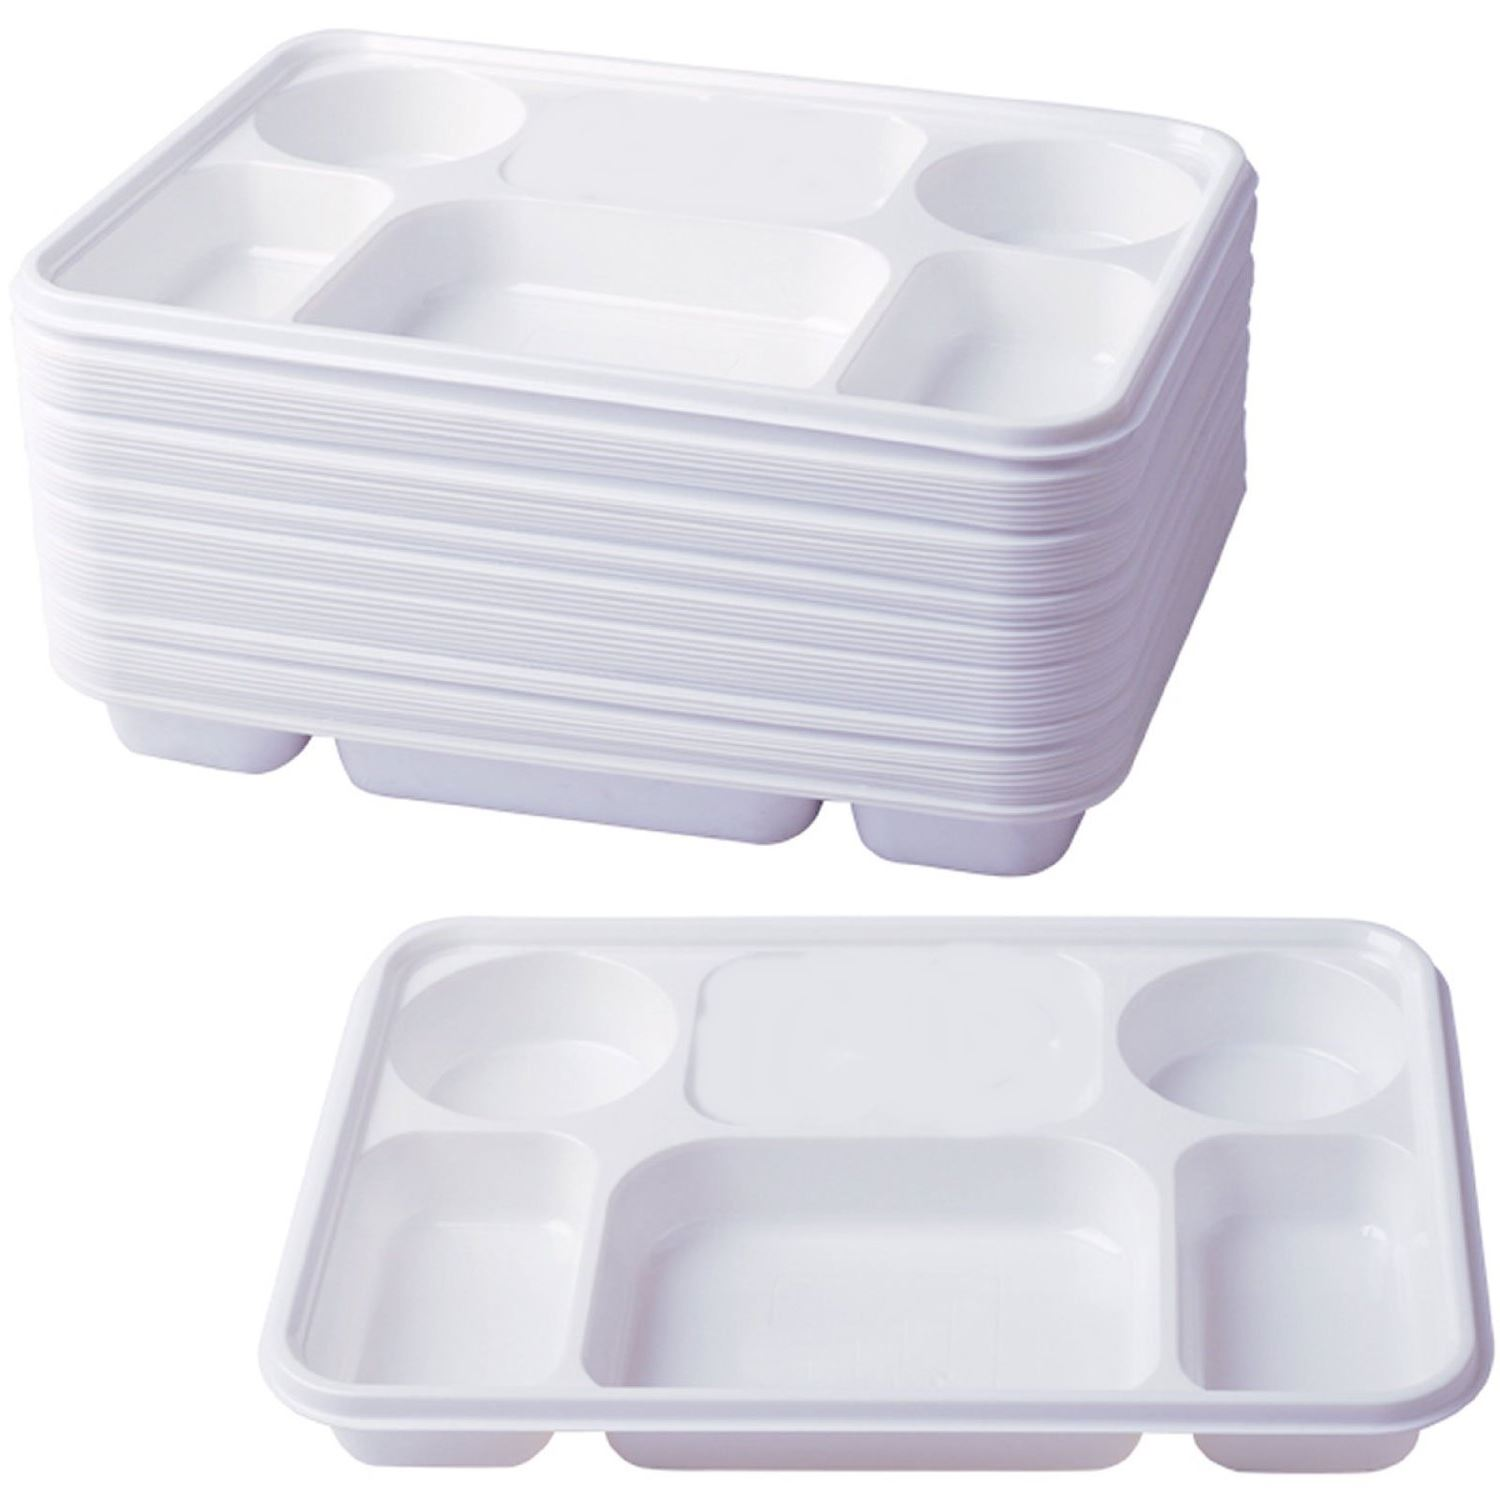 6 Compartment Plastic Dinner Plates 50pc Party Home Food Disposable ...